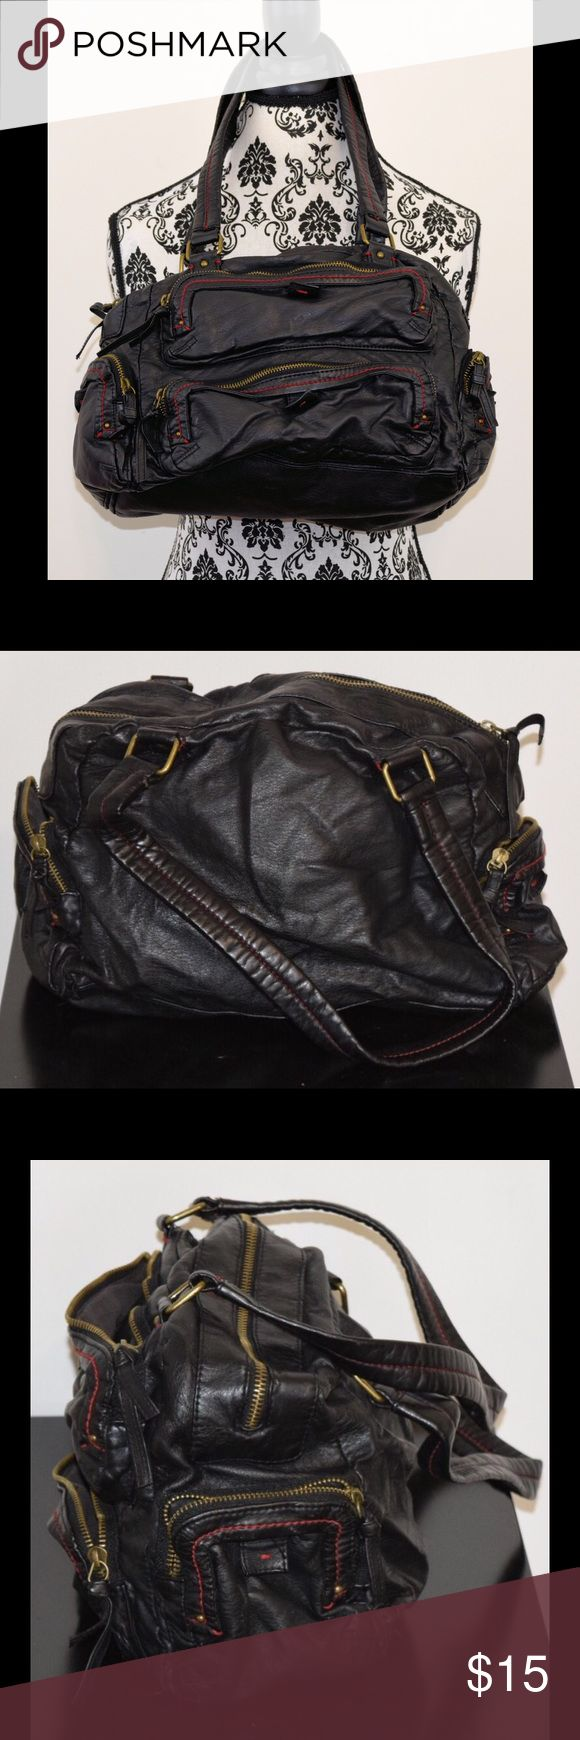 """Converse Black Faux Leather Purse Stylish with storage! Soft faux leather slouchy black handbag with zippered pockets. Zippered inside pocket, with roomy zippered pockets on front and sides. Red stitching. Like new. Approx 12"""" L, 9"""" H Strap drop approx. 12"""". Converse Bags Satchels"""